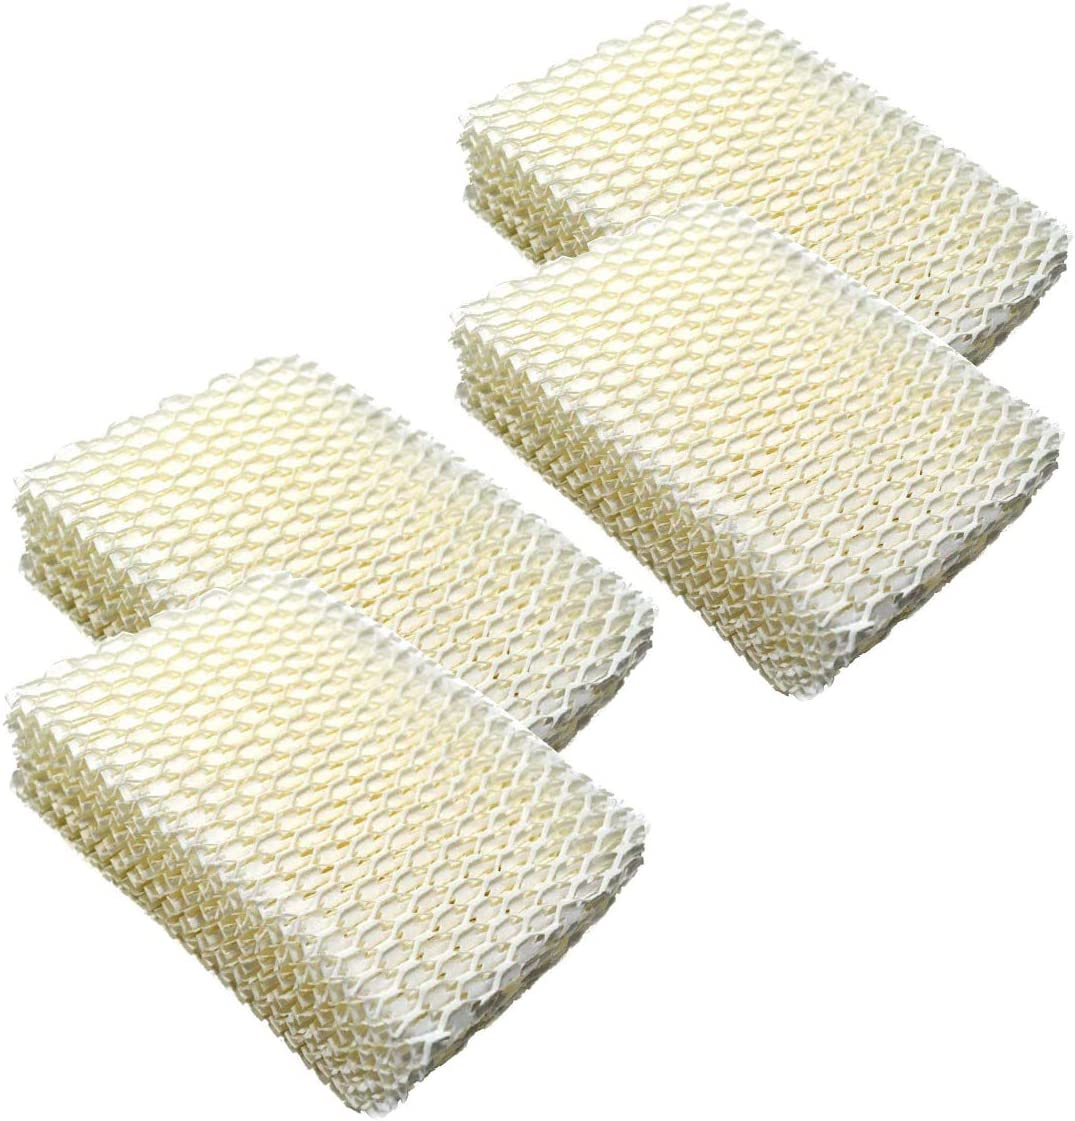 JJDD Replacement Humidifier Wick Filters for ReliOn RCM 832 RCM 832N DH 832 DH 830 Duracraft Robitussin DH830 DH832 HC832 Humidifier, replace WF813